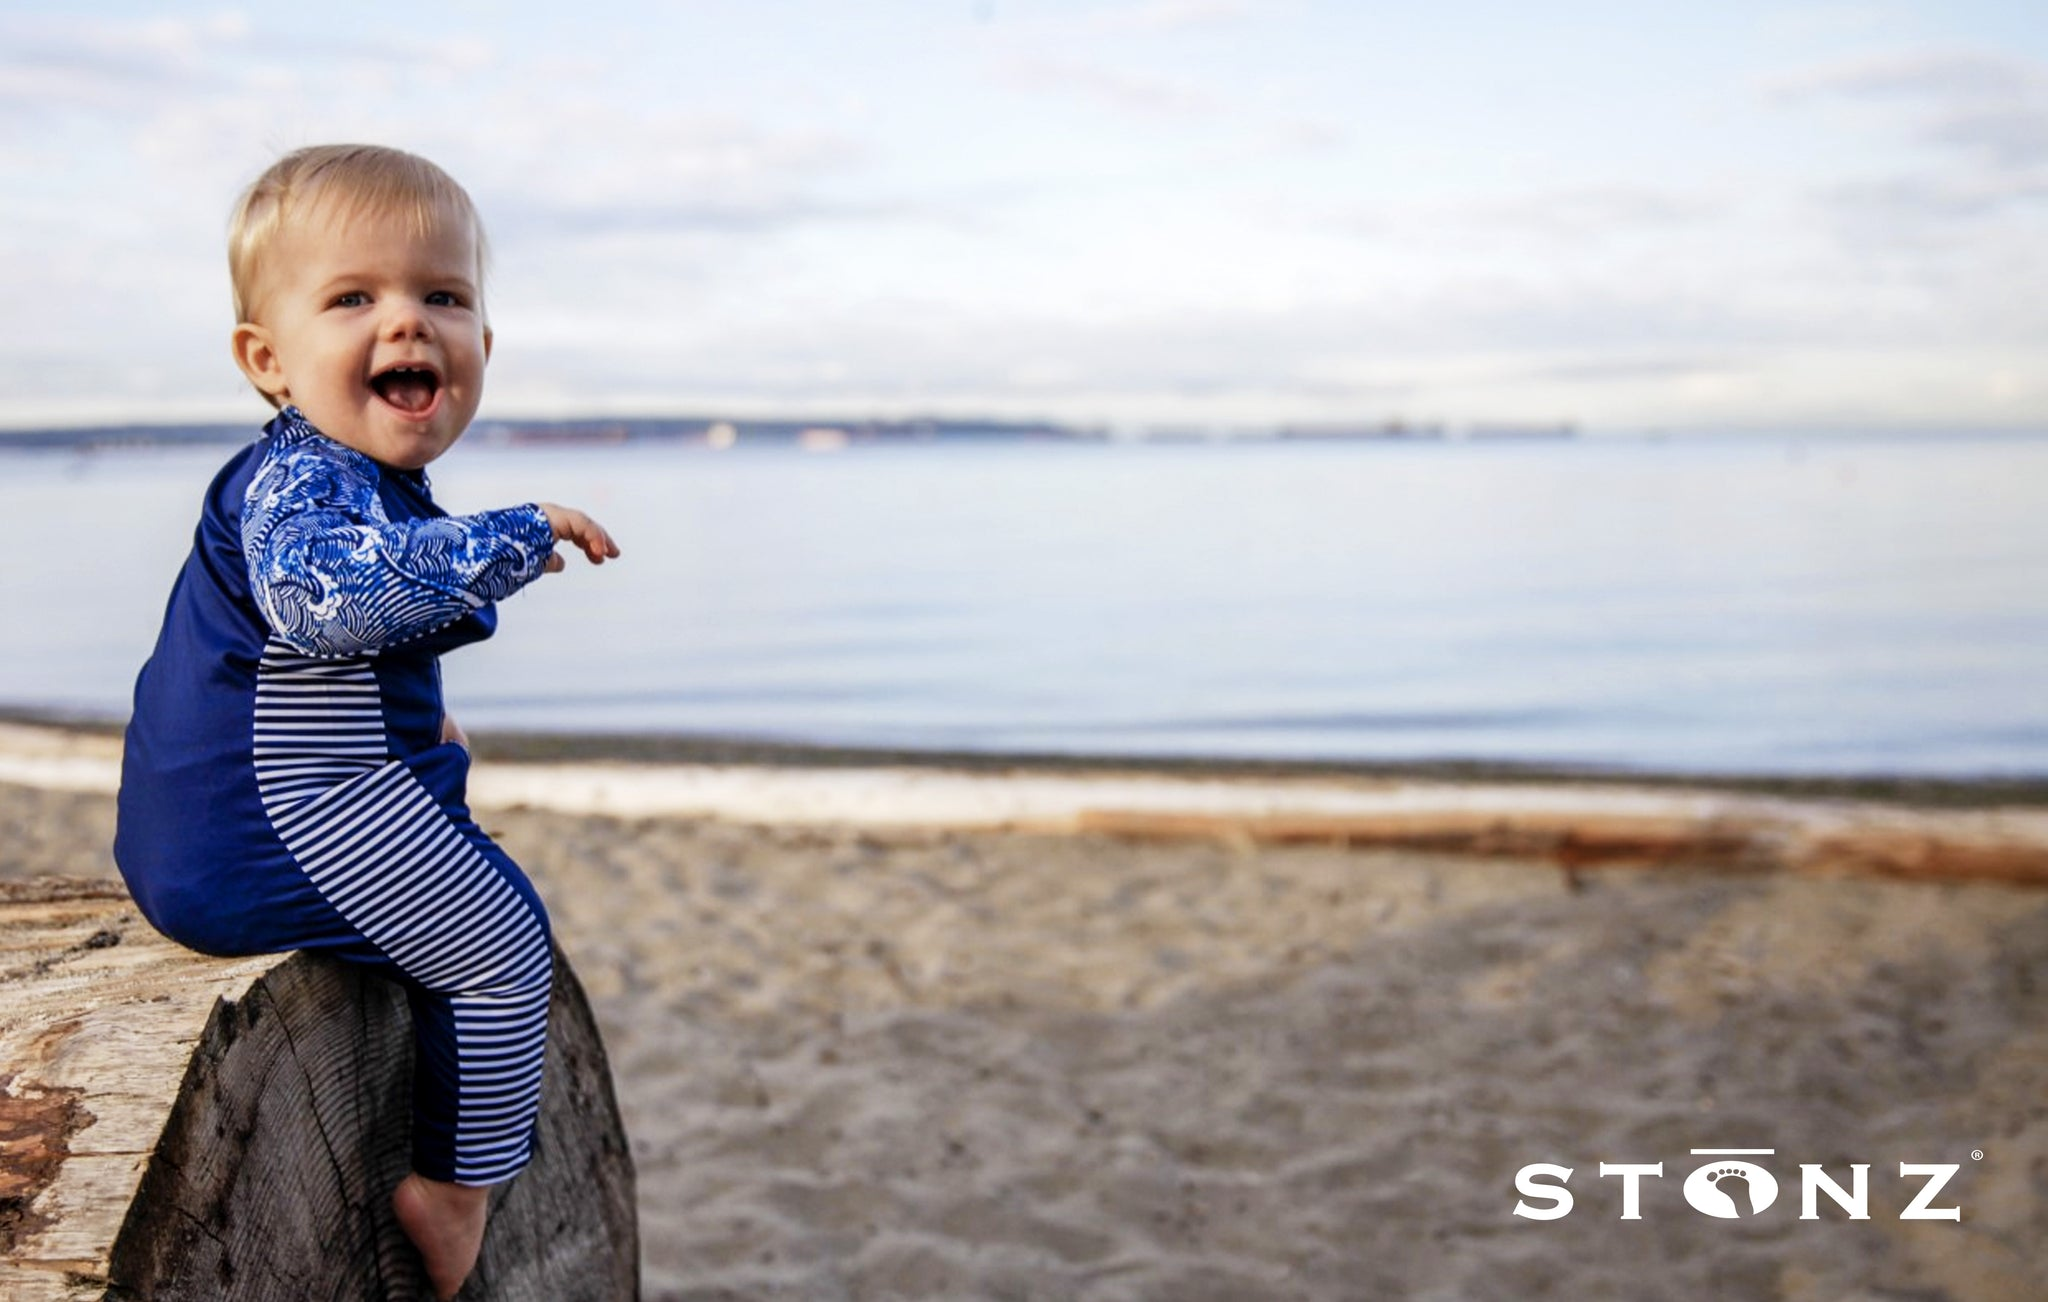 Stonz Summer Collection for Babies and Kids